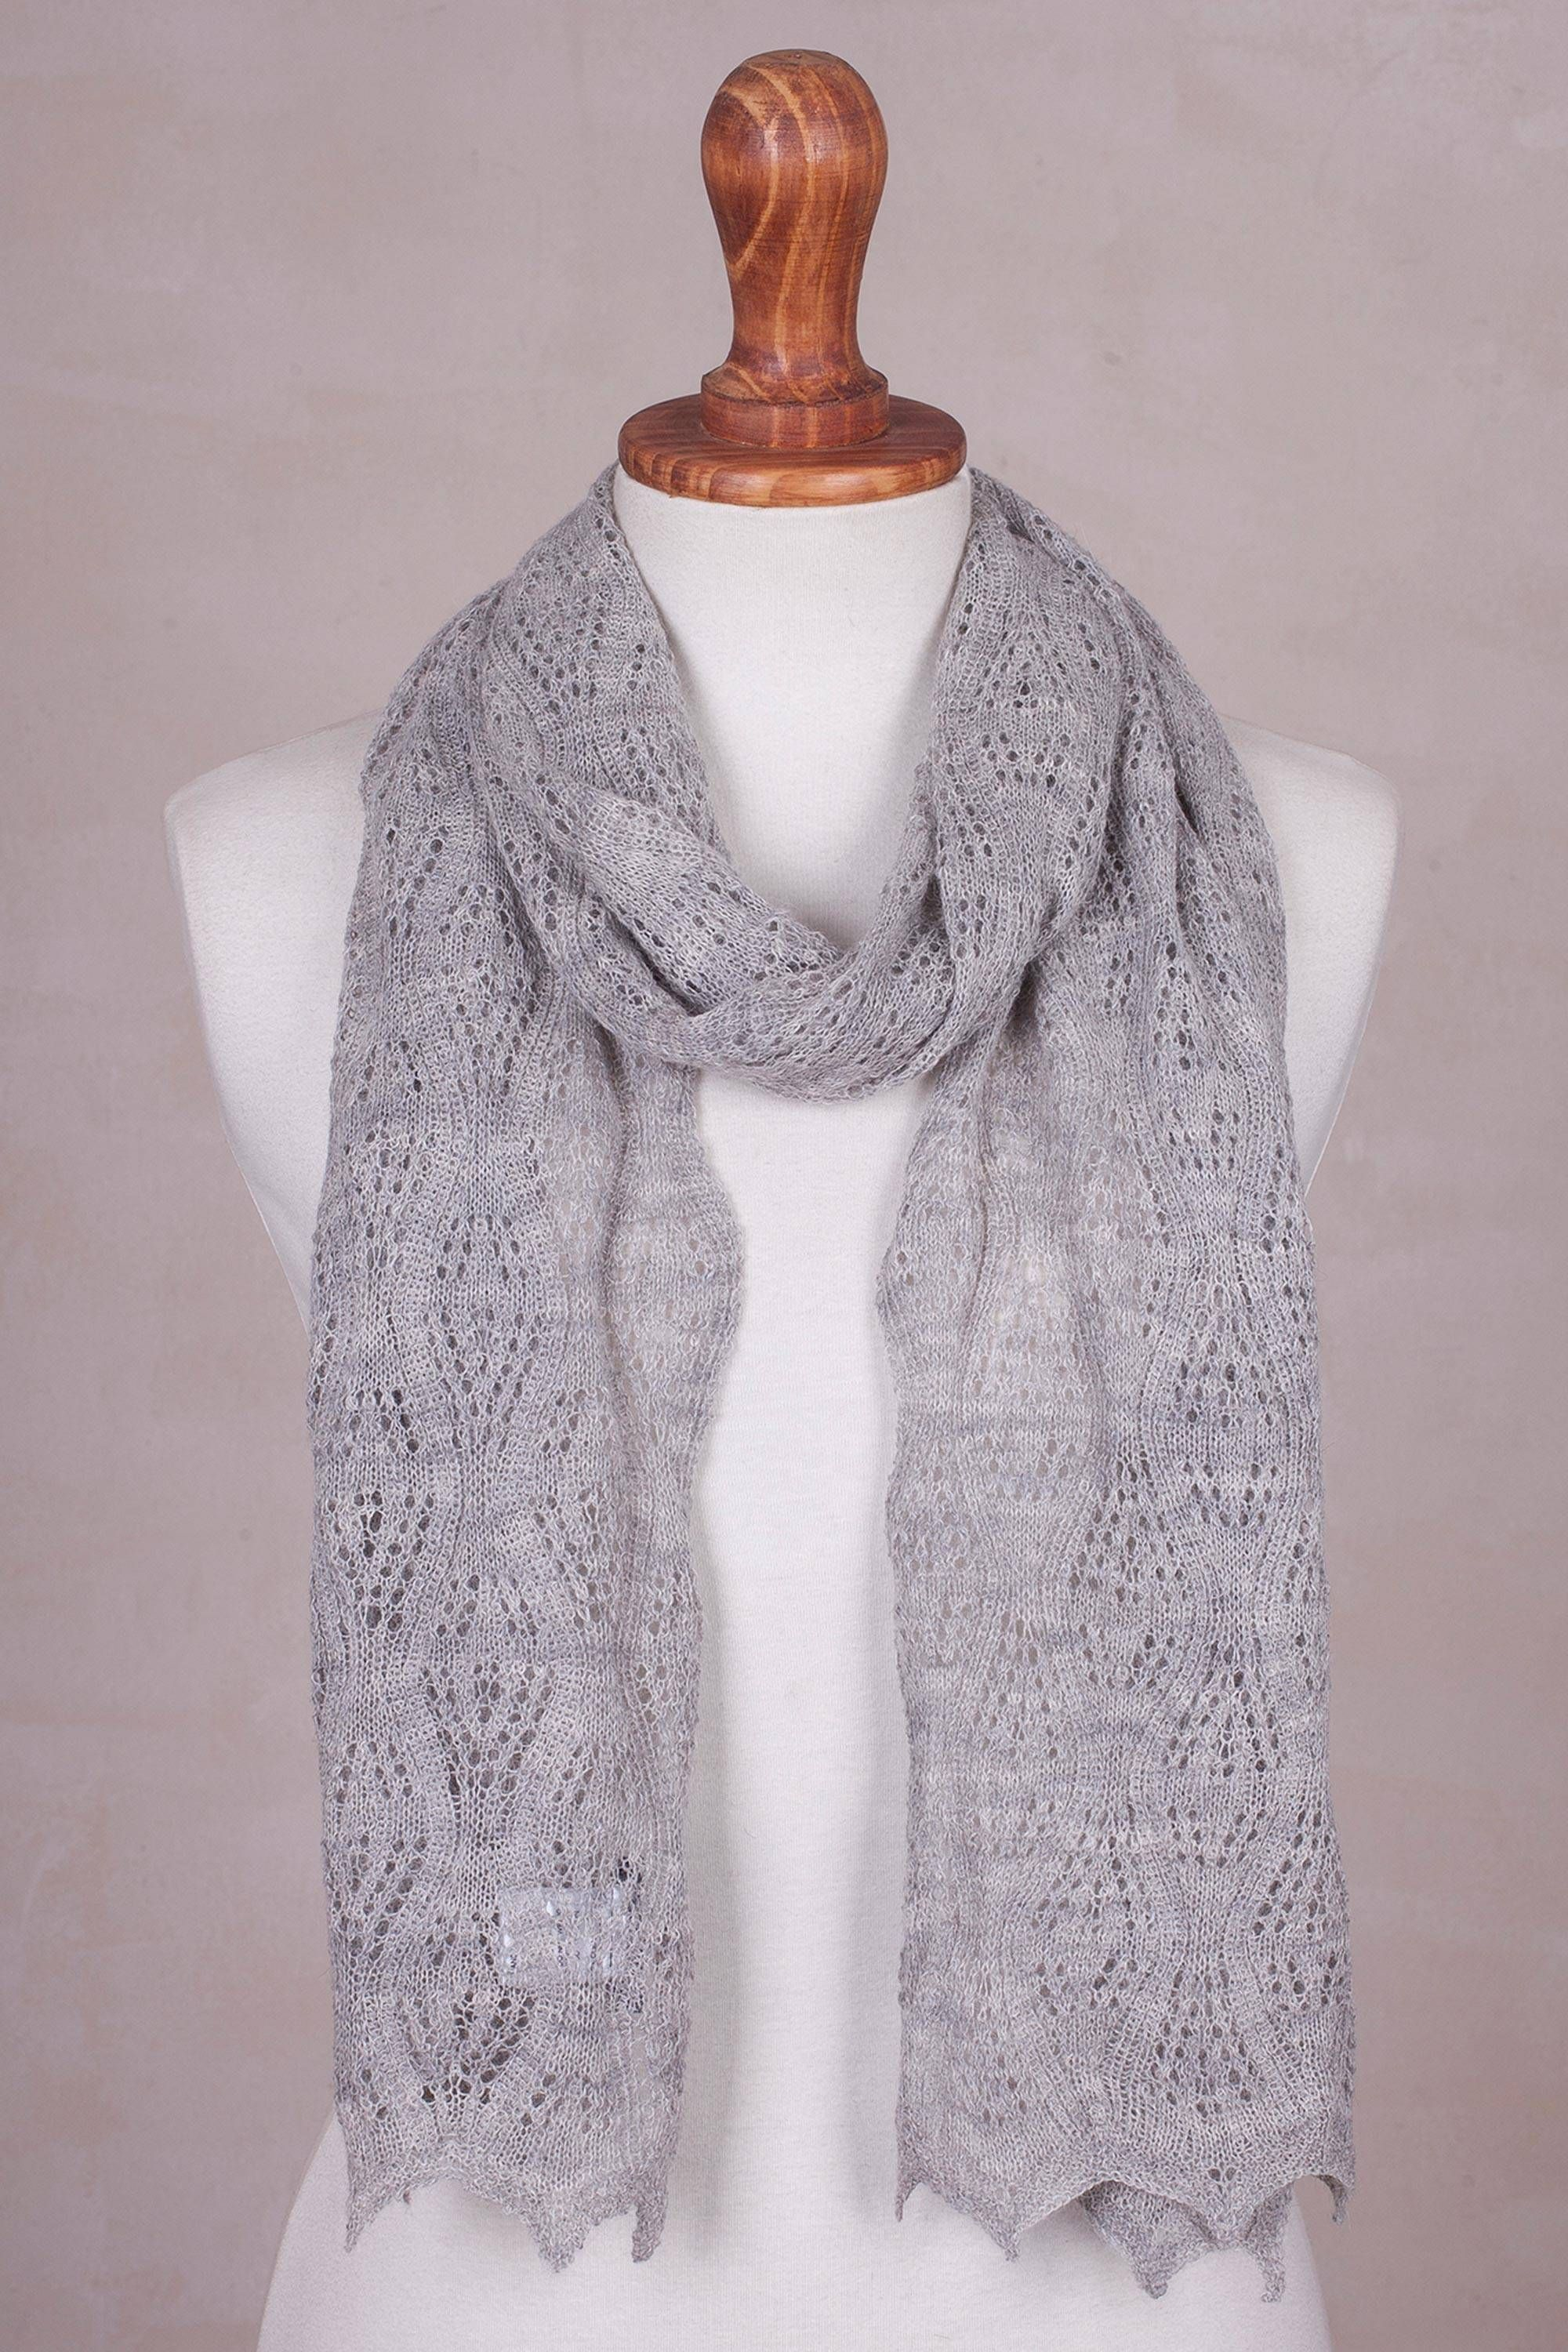 100 Baby Alpaca Scarf Style And Harmony In Dove Grey Sponsored Alpaca Sponsored Scarf Baby Dove Baby Alpaca Scarf Alpaca Scarf Baby Alpaca